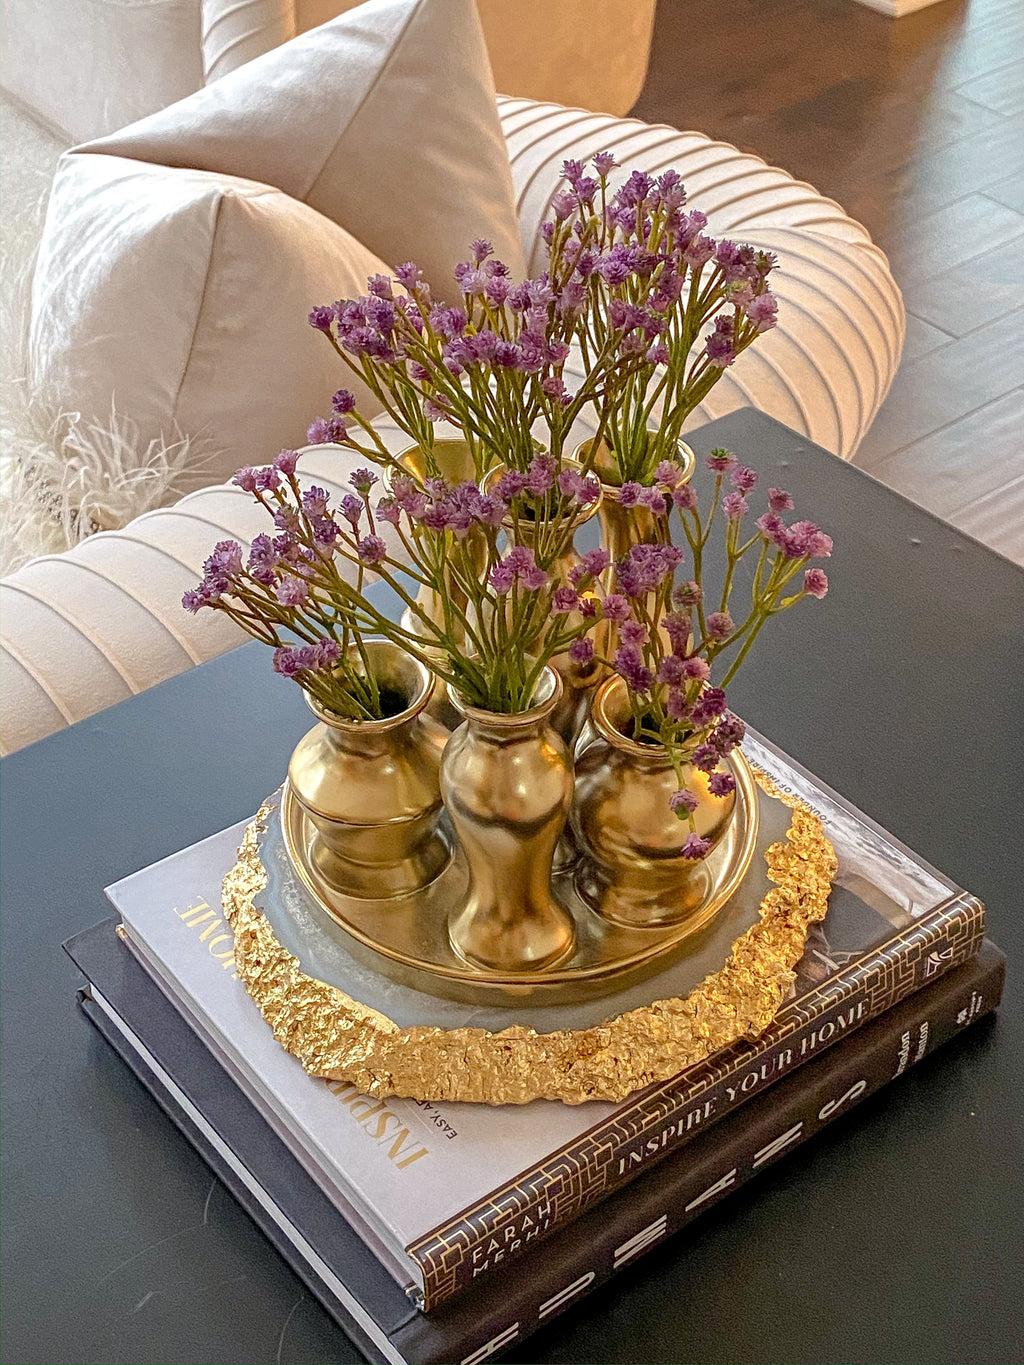 Round Base Gold Vase Display-Inspire Me! Home Decor